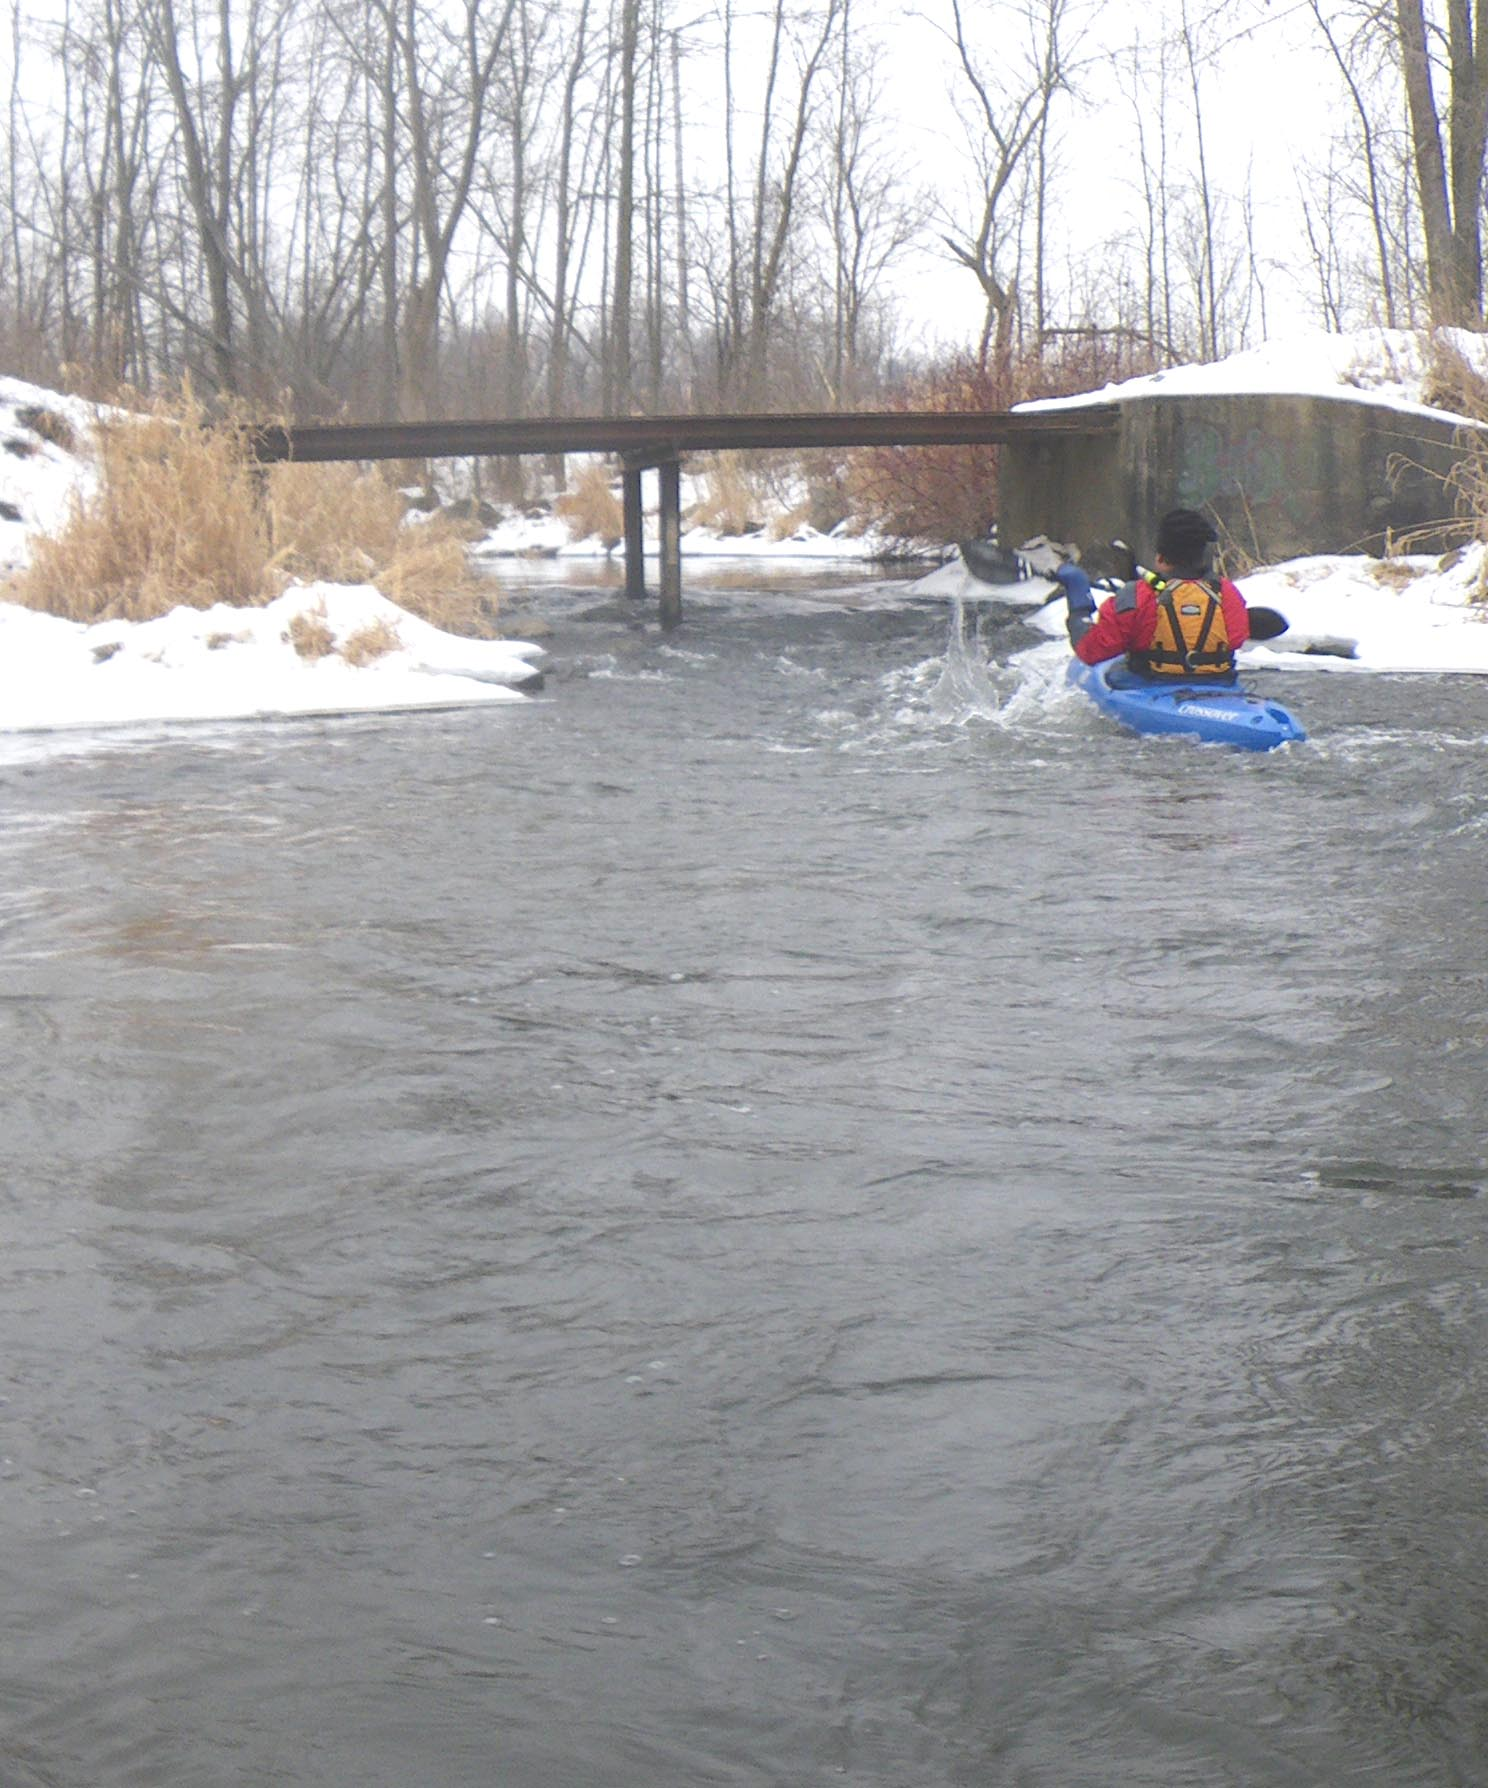 //www.gameandfishmag.com/files/winter-weather-survival/winter-paddling.jpg